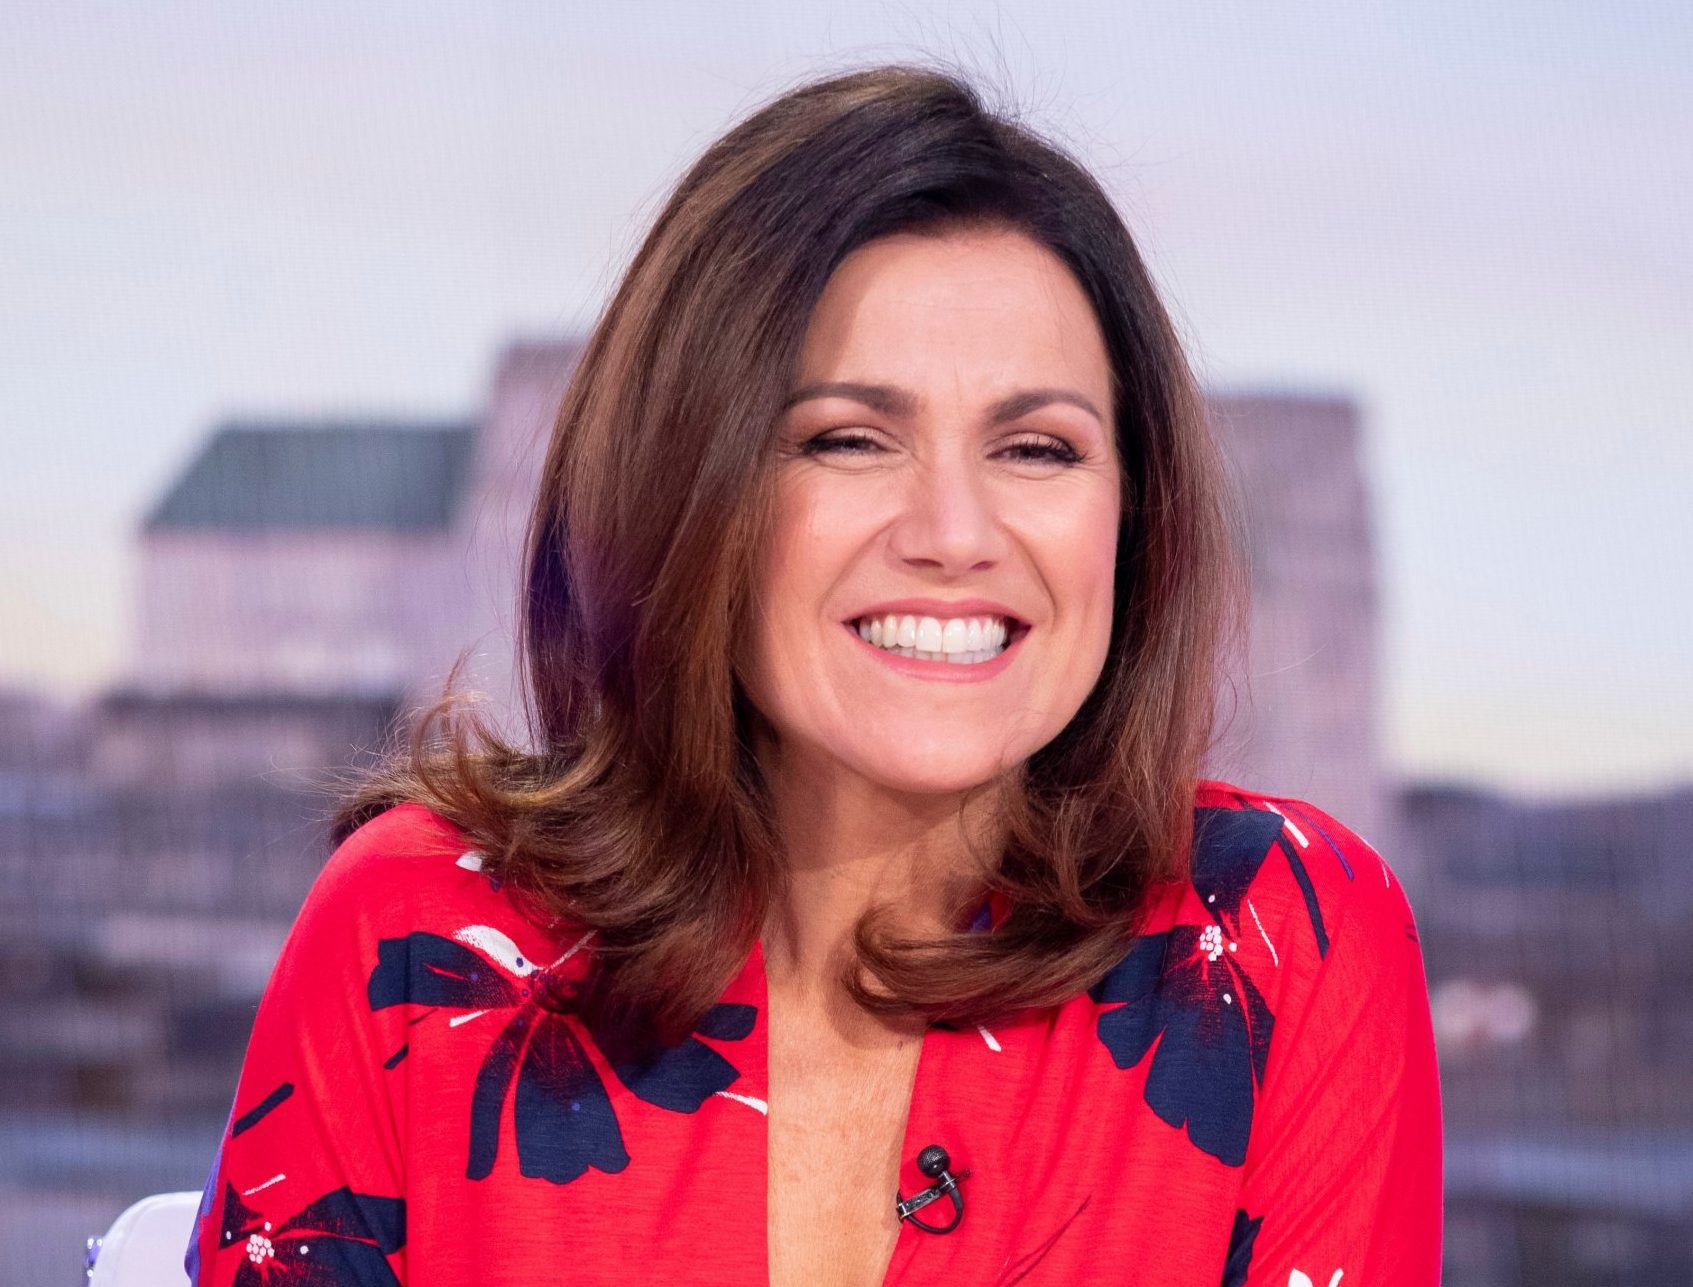 Editorial use only Mandatory Credit: Photo by Ken McKay/ITV/REX (10069544ab) Susanna Reid 'Good Morning Britain' TV show, London, UK - 21 Jan 2019